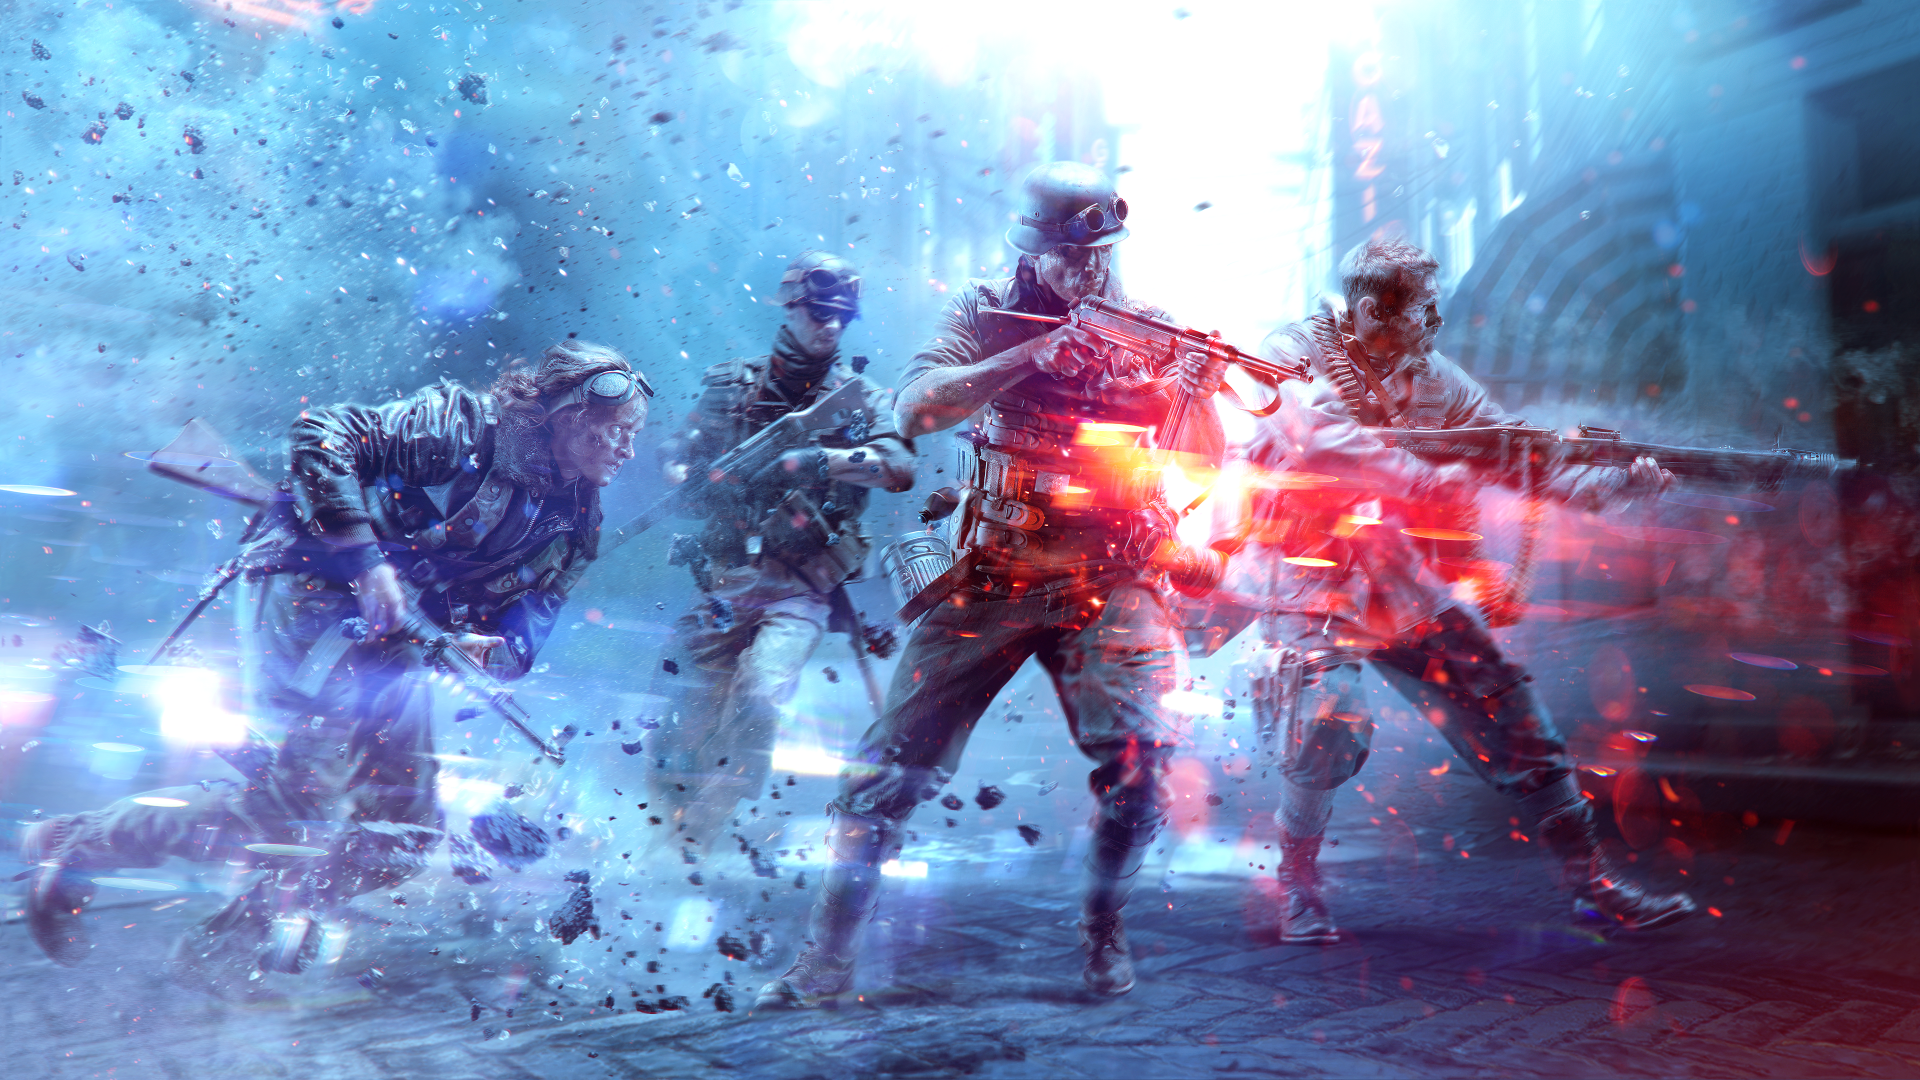 "<span class=""bbcode-text-purple"">Battlefield V</span> <span class=""bbcode-text-darkred"">Carousel</span> Entry #1"